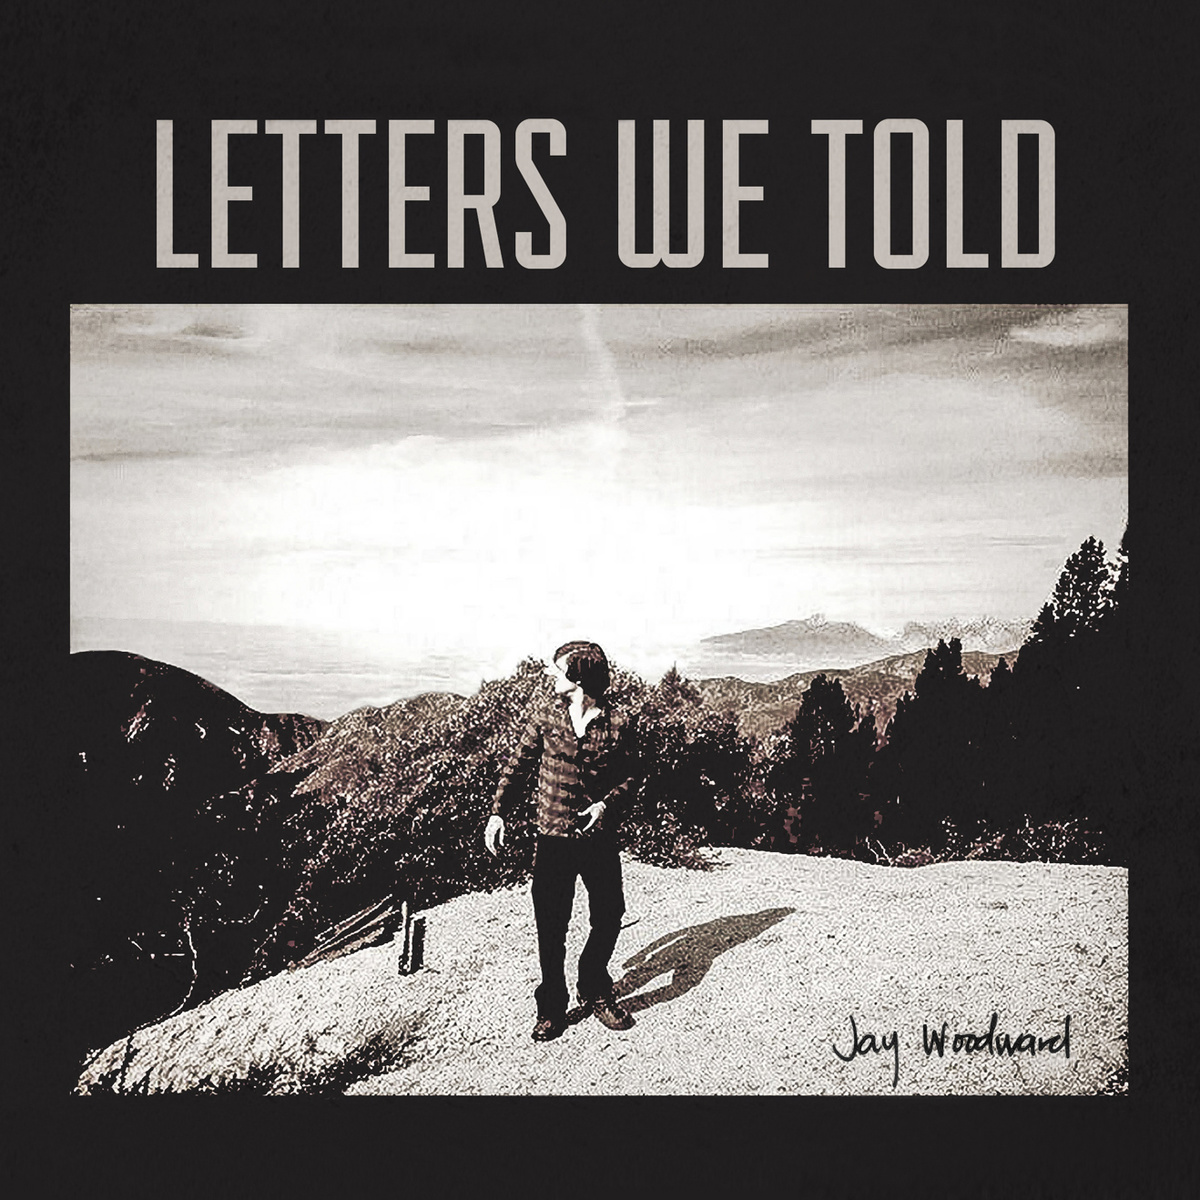 Jay Woodward - Letters We Told